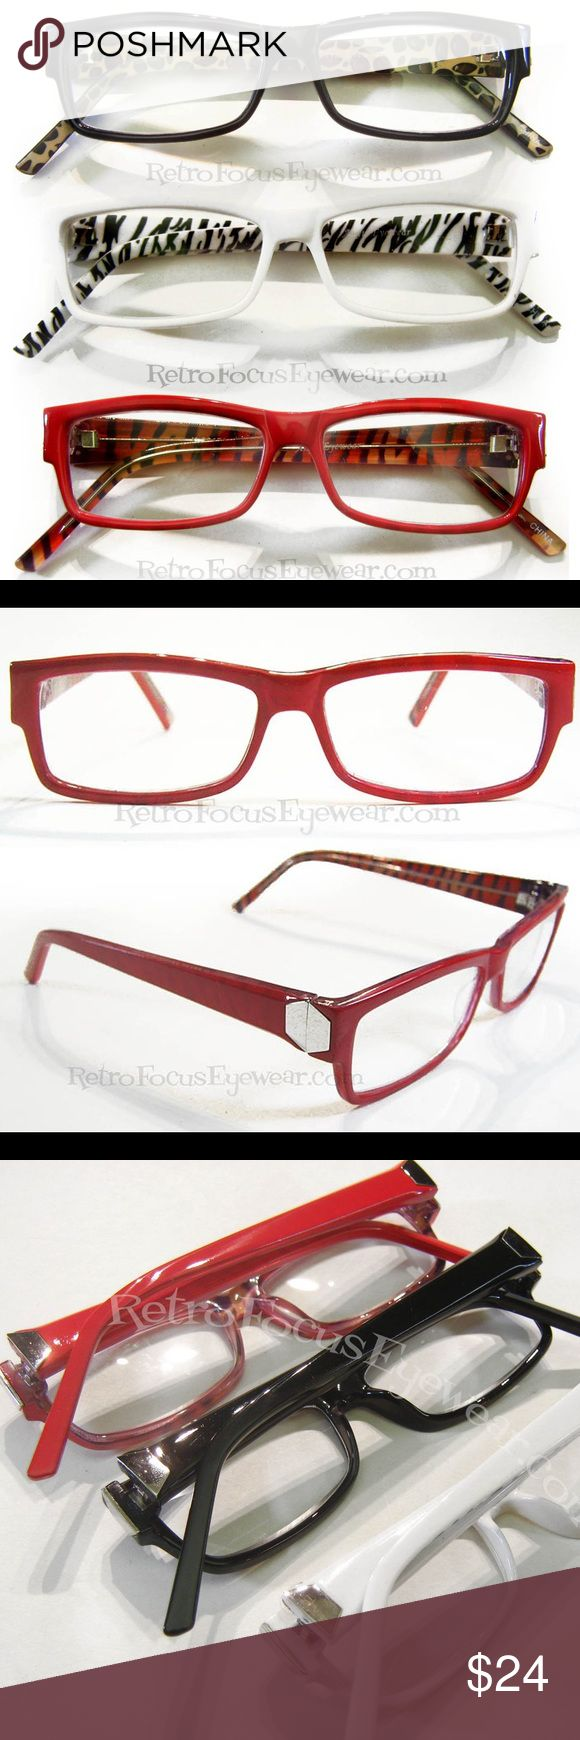 "3pr Reading Glasses Quality Animal Print White Red Best Buy @3 pairs for $24. Quality NEW reading glasses offered in sets of 3 of the same strengthPRICE is FIRMFrame width 5 1/4"" suits average sized oval, oblong, square or rectangular face. Animal print on the inside, color on the outside w silver tone triangles at hinges. Nice prescription friendly better plastic frames that you won't find in your neighborhood store or online. Every order comes w a cleaning cloth. 20%discount off bundles of…"